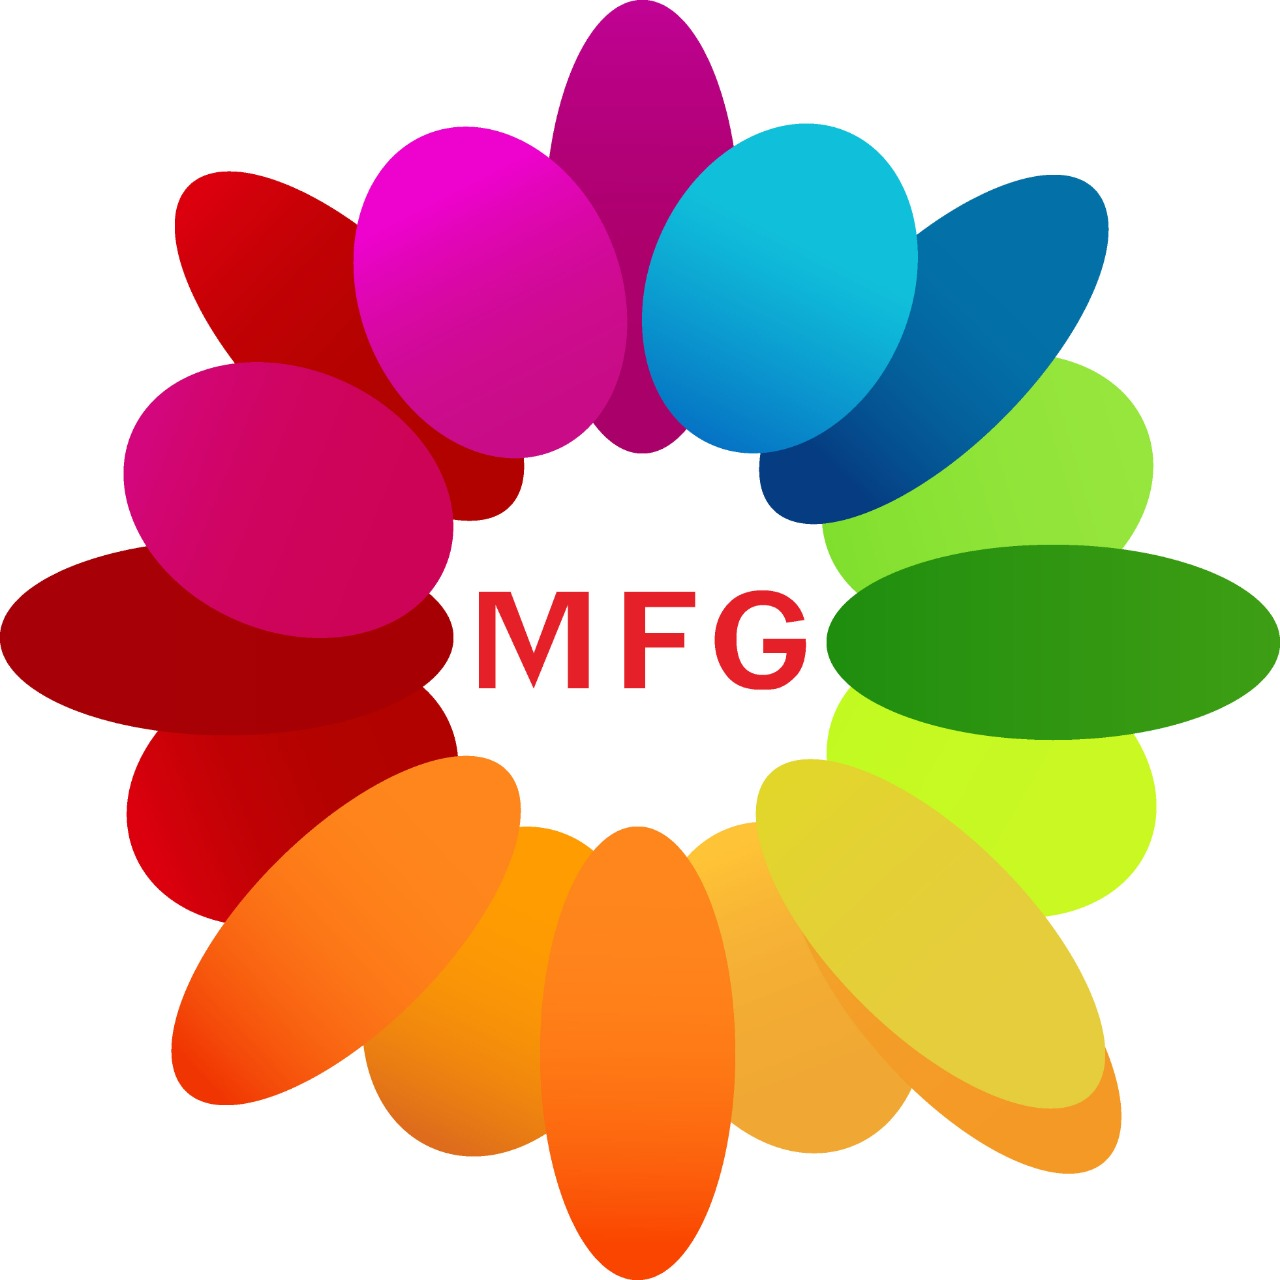 1 kg strawberry vanilla cocktail heart shape cake with bottle of wine